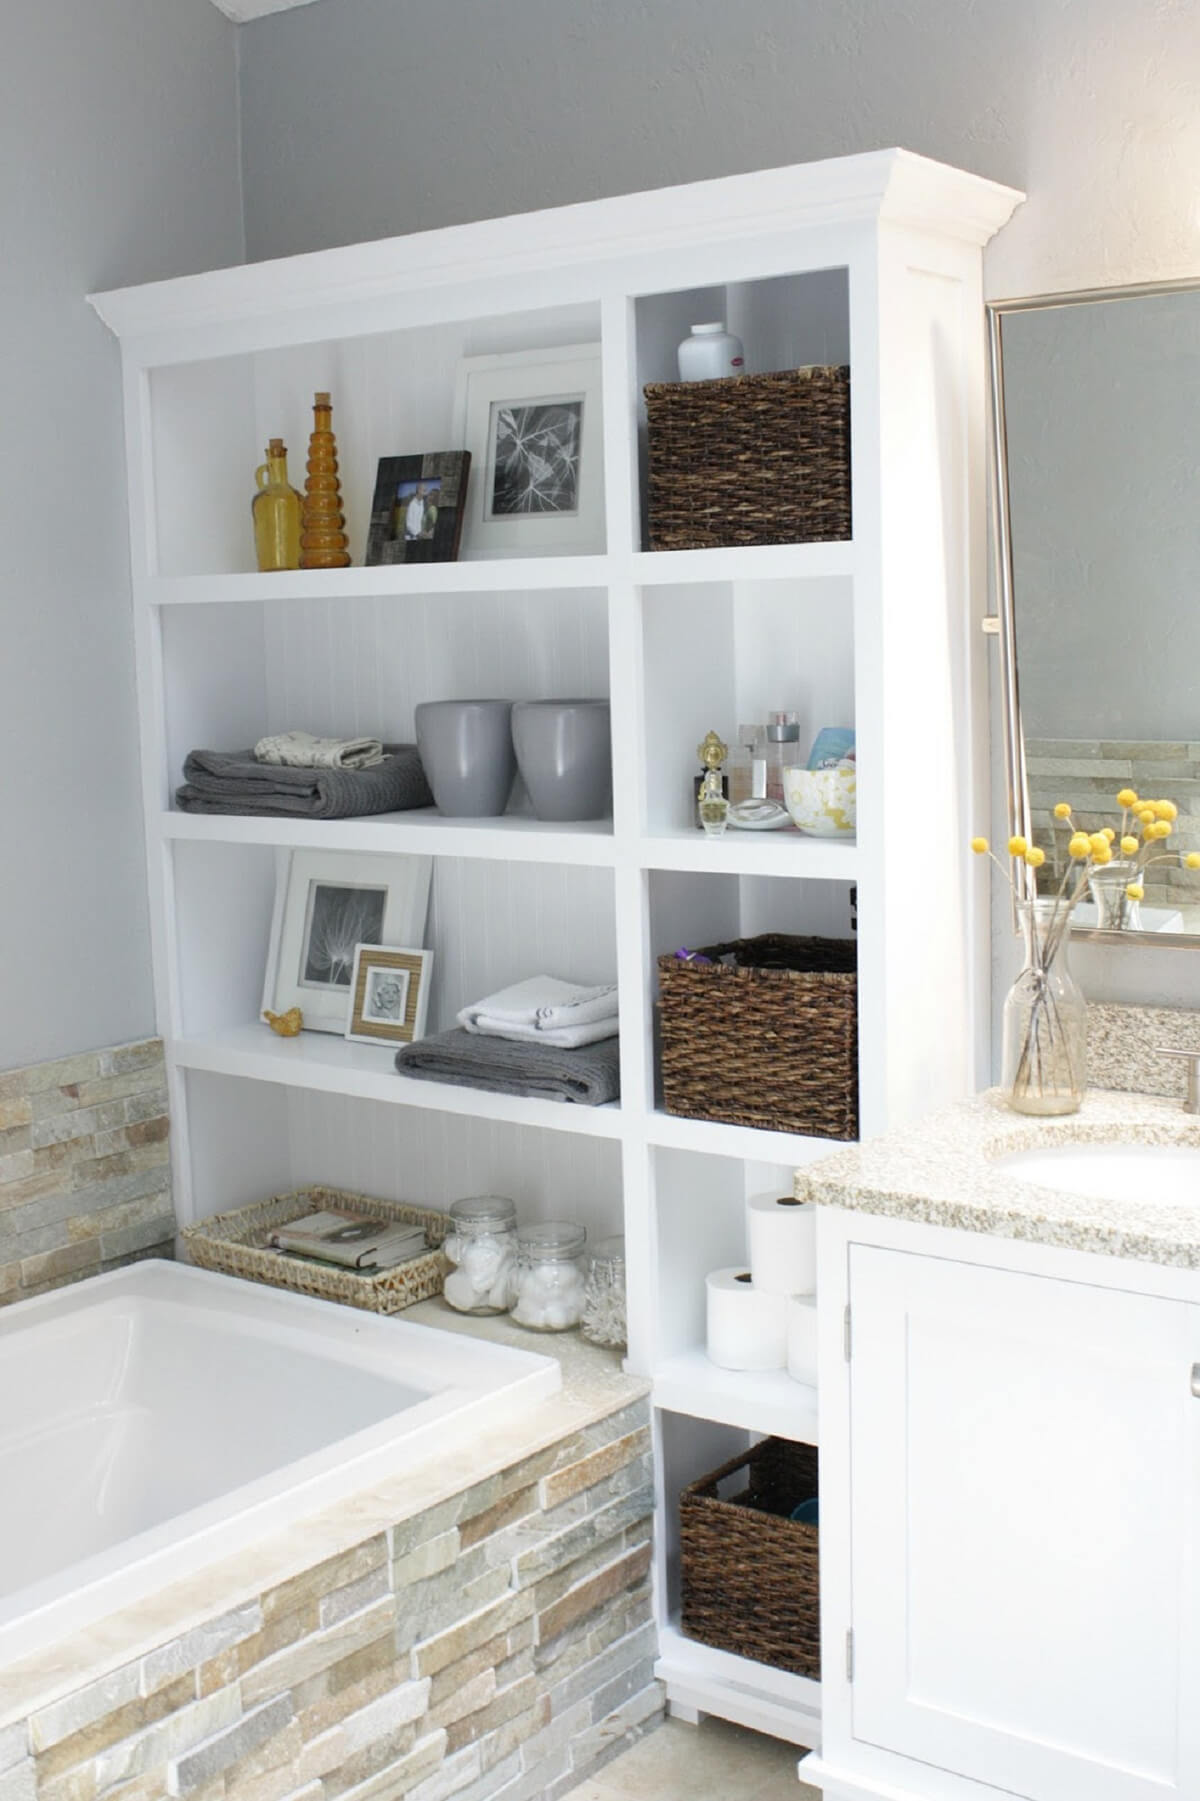 Small bathroom ideas - 28 Re Purpose That Old Bookshelf